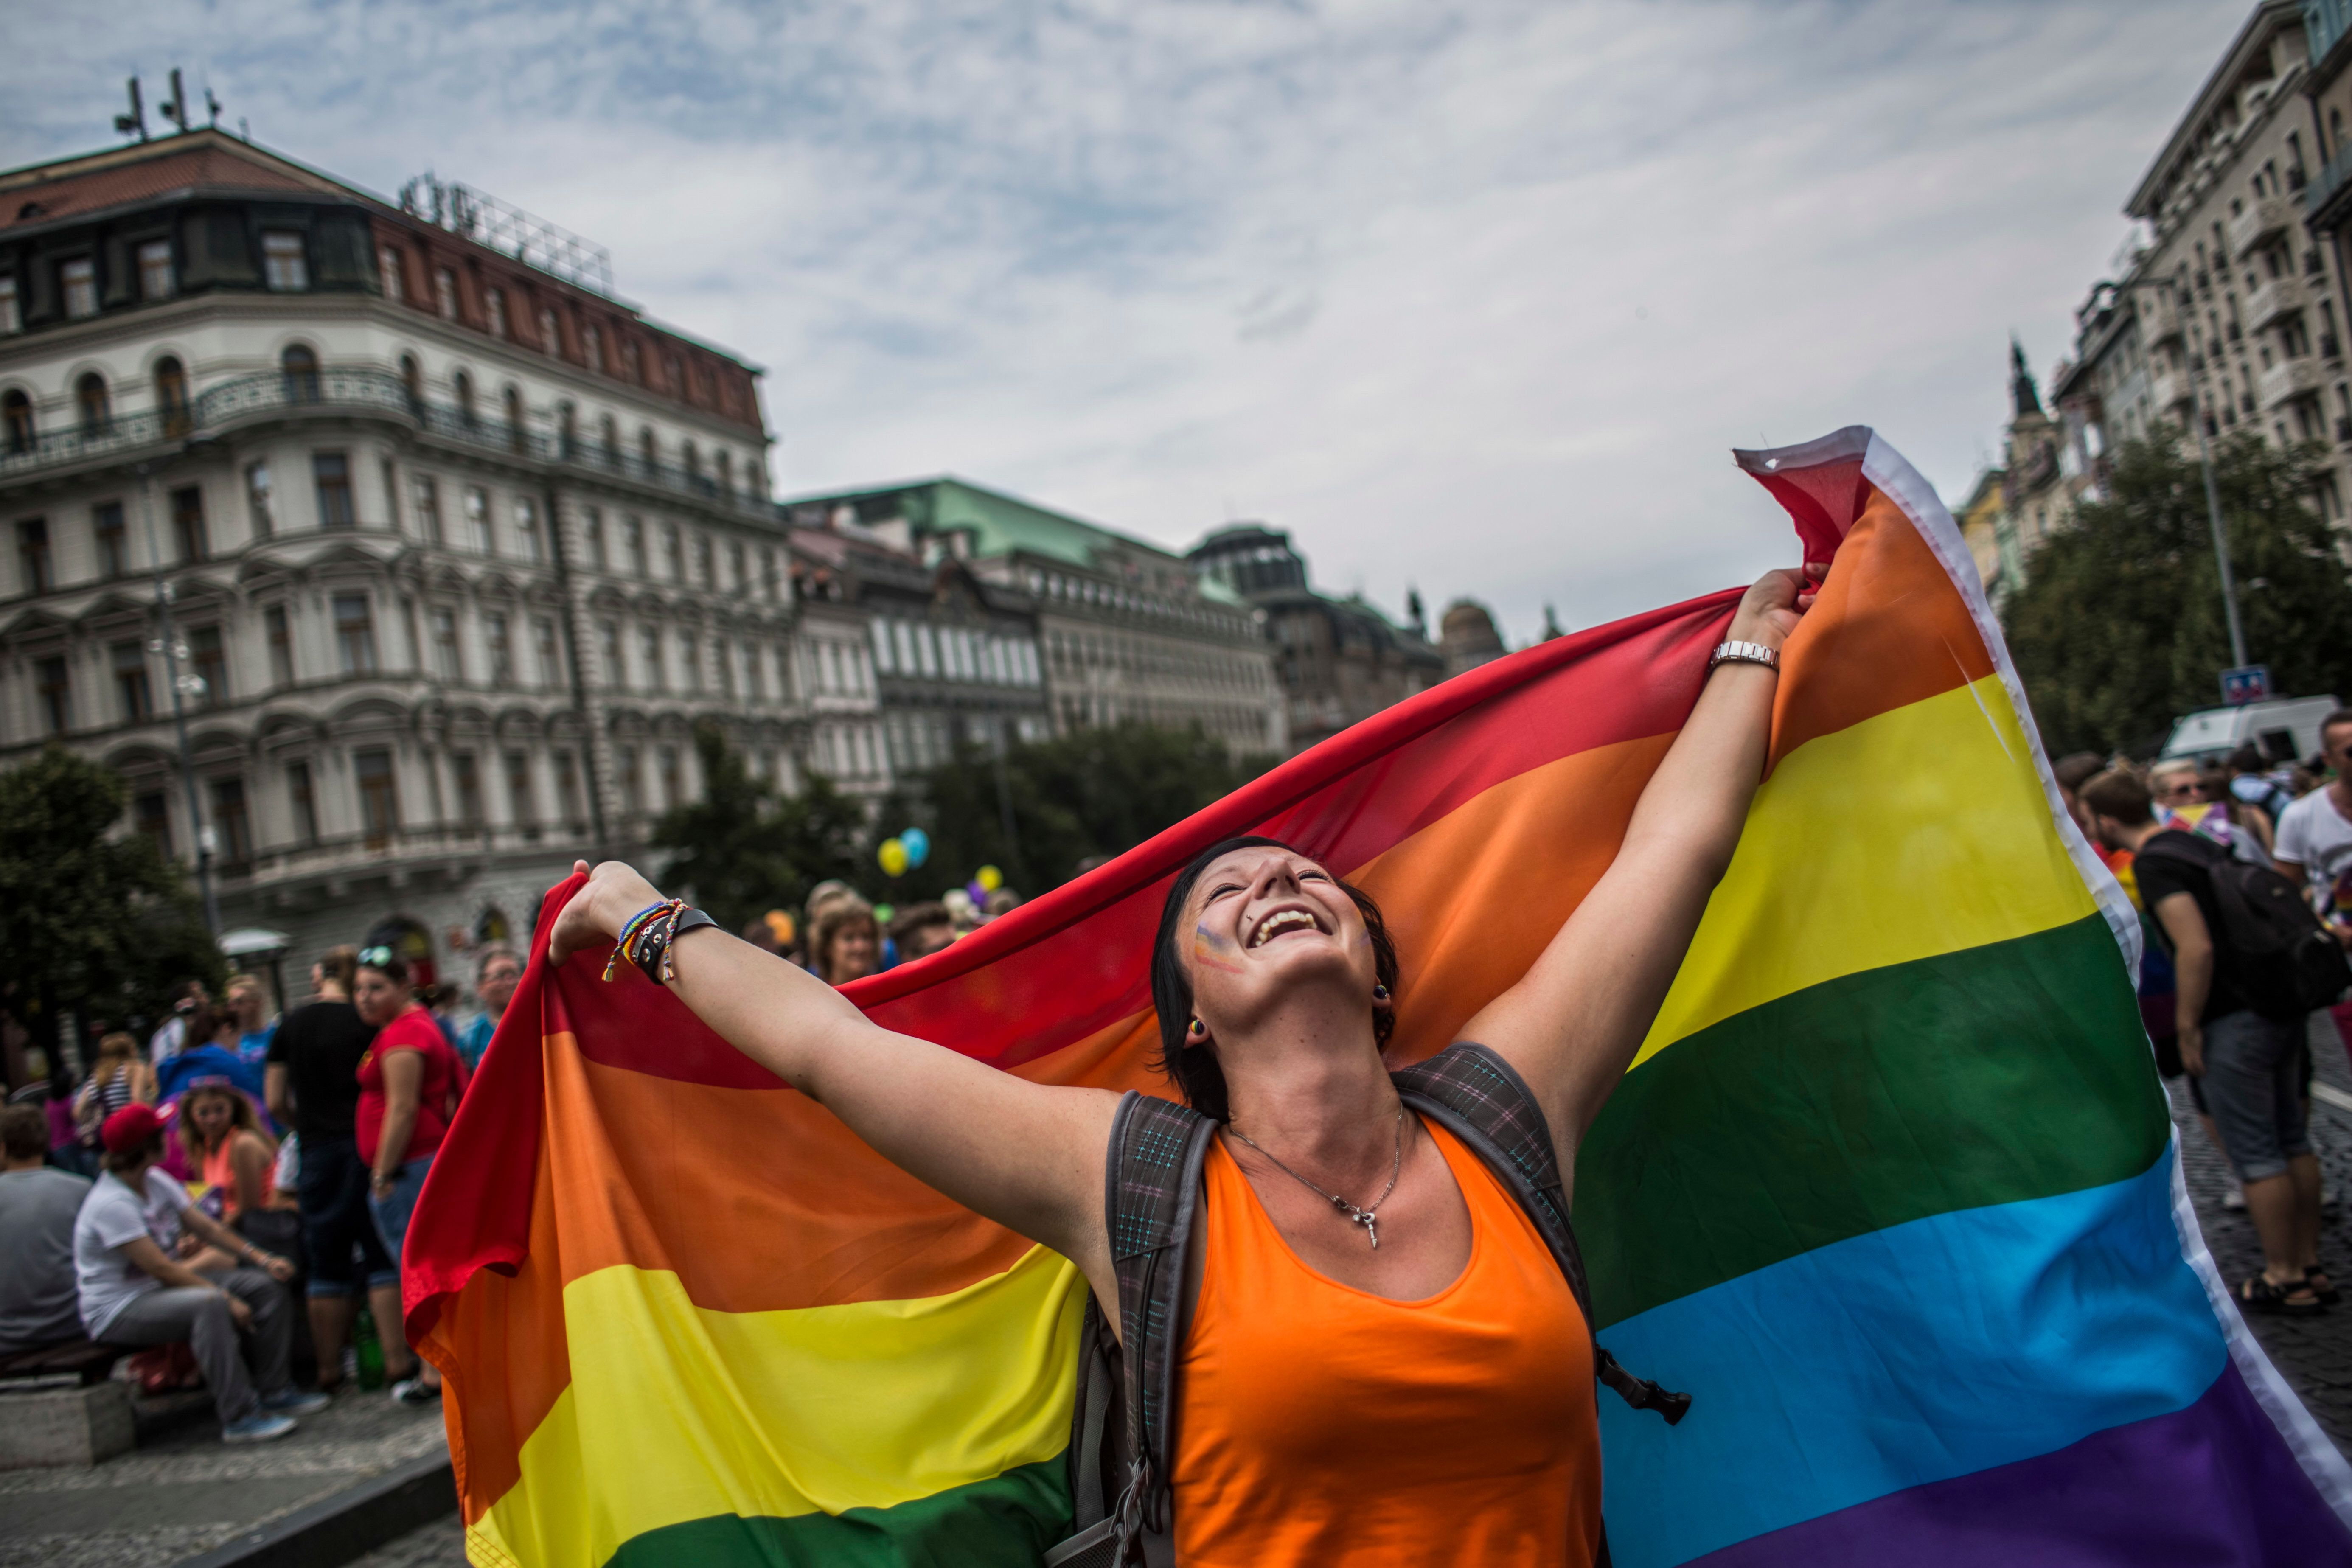 In 2006, the Czech Parliament approved a law allowing same-sex partners to live in an officially registered partnership.&nbsp